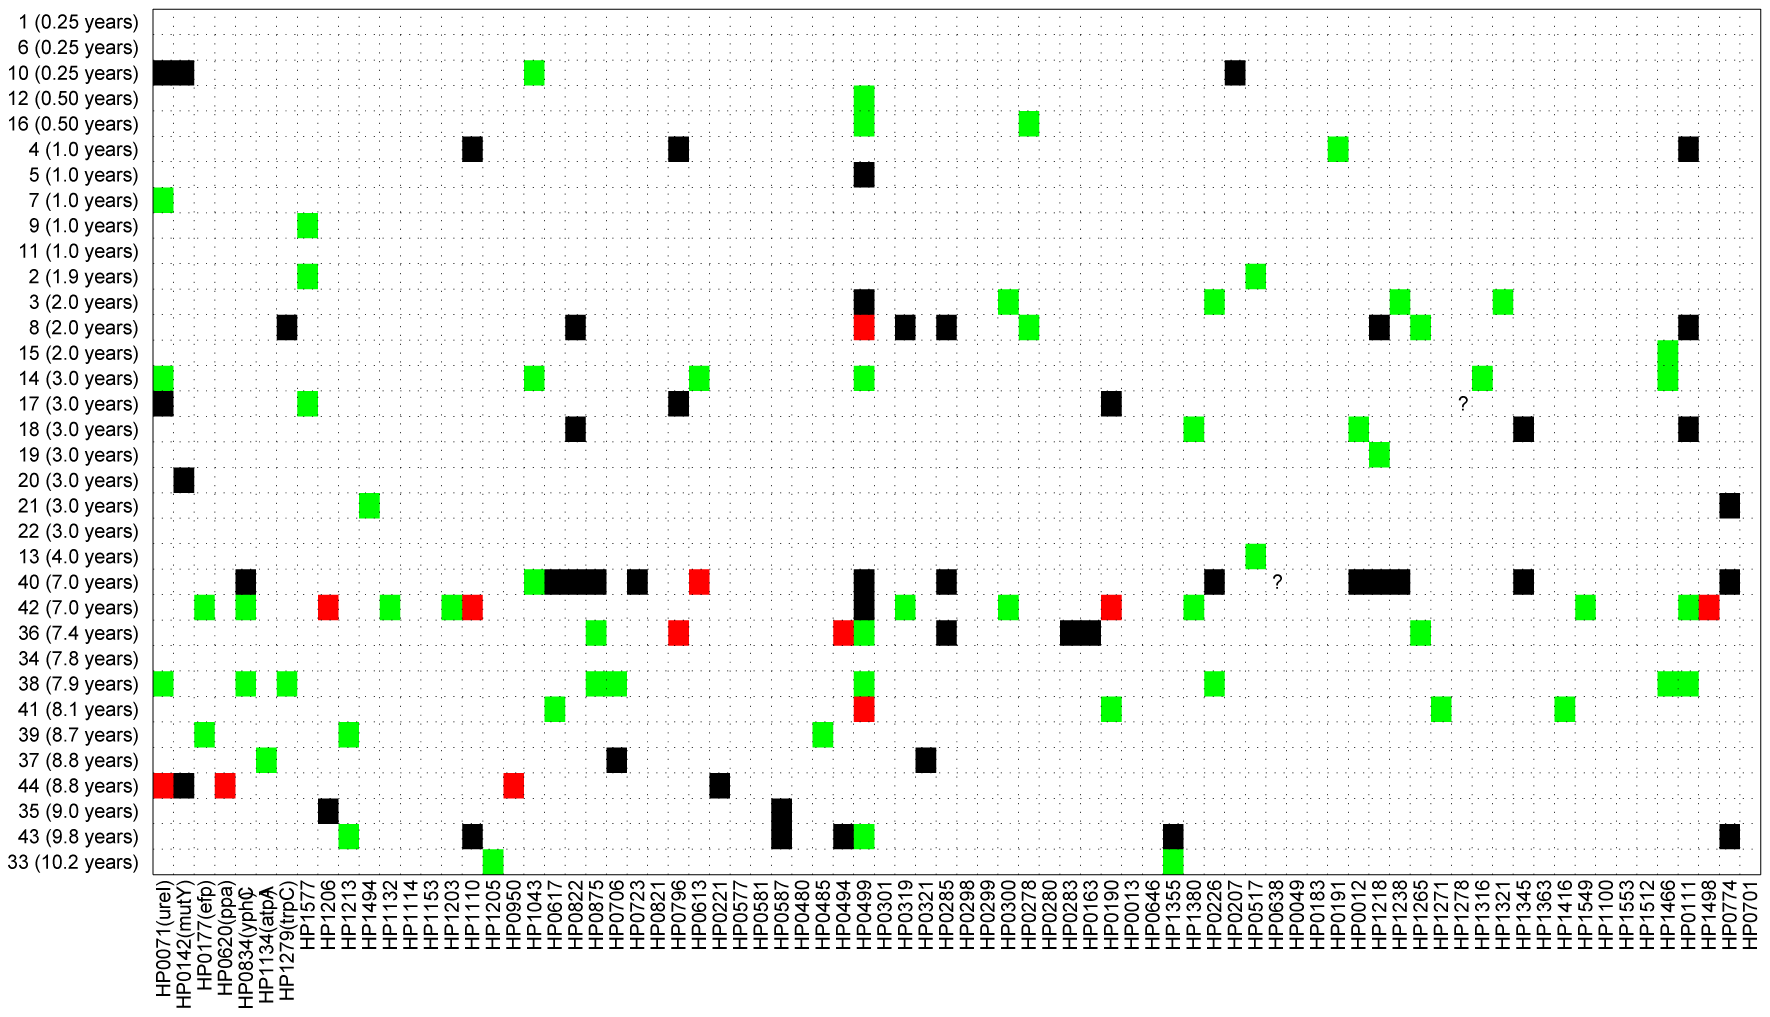 Sequence differences for 78 gene fragments (X axis) that were tested from 34 pairs of sequential isolates (Y axis).